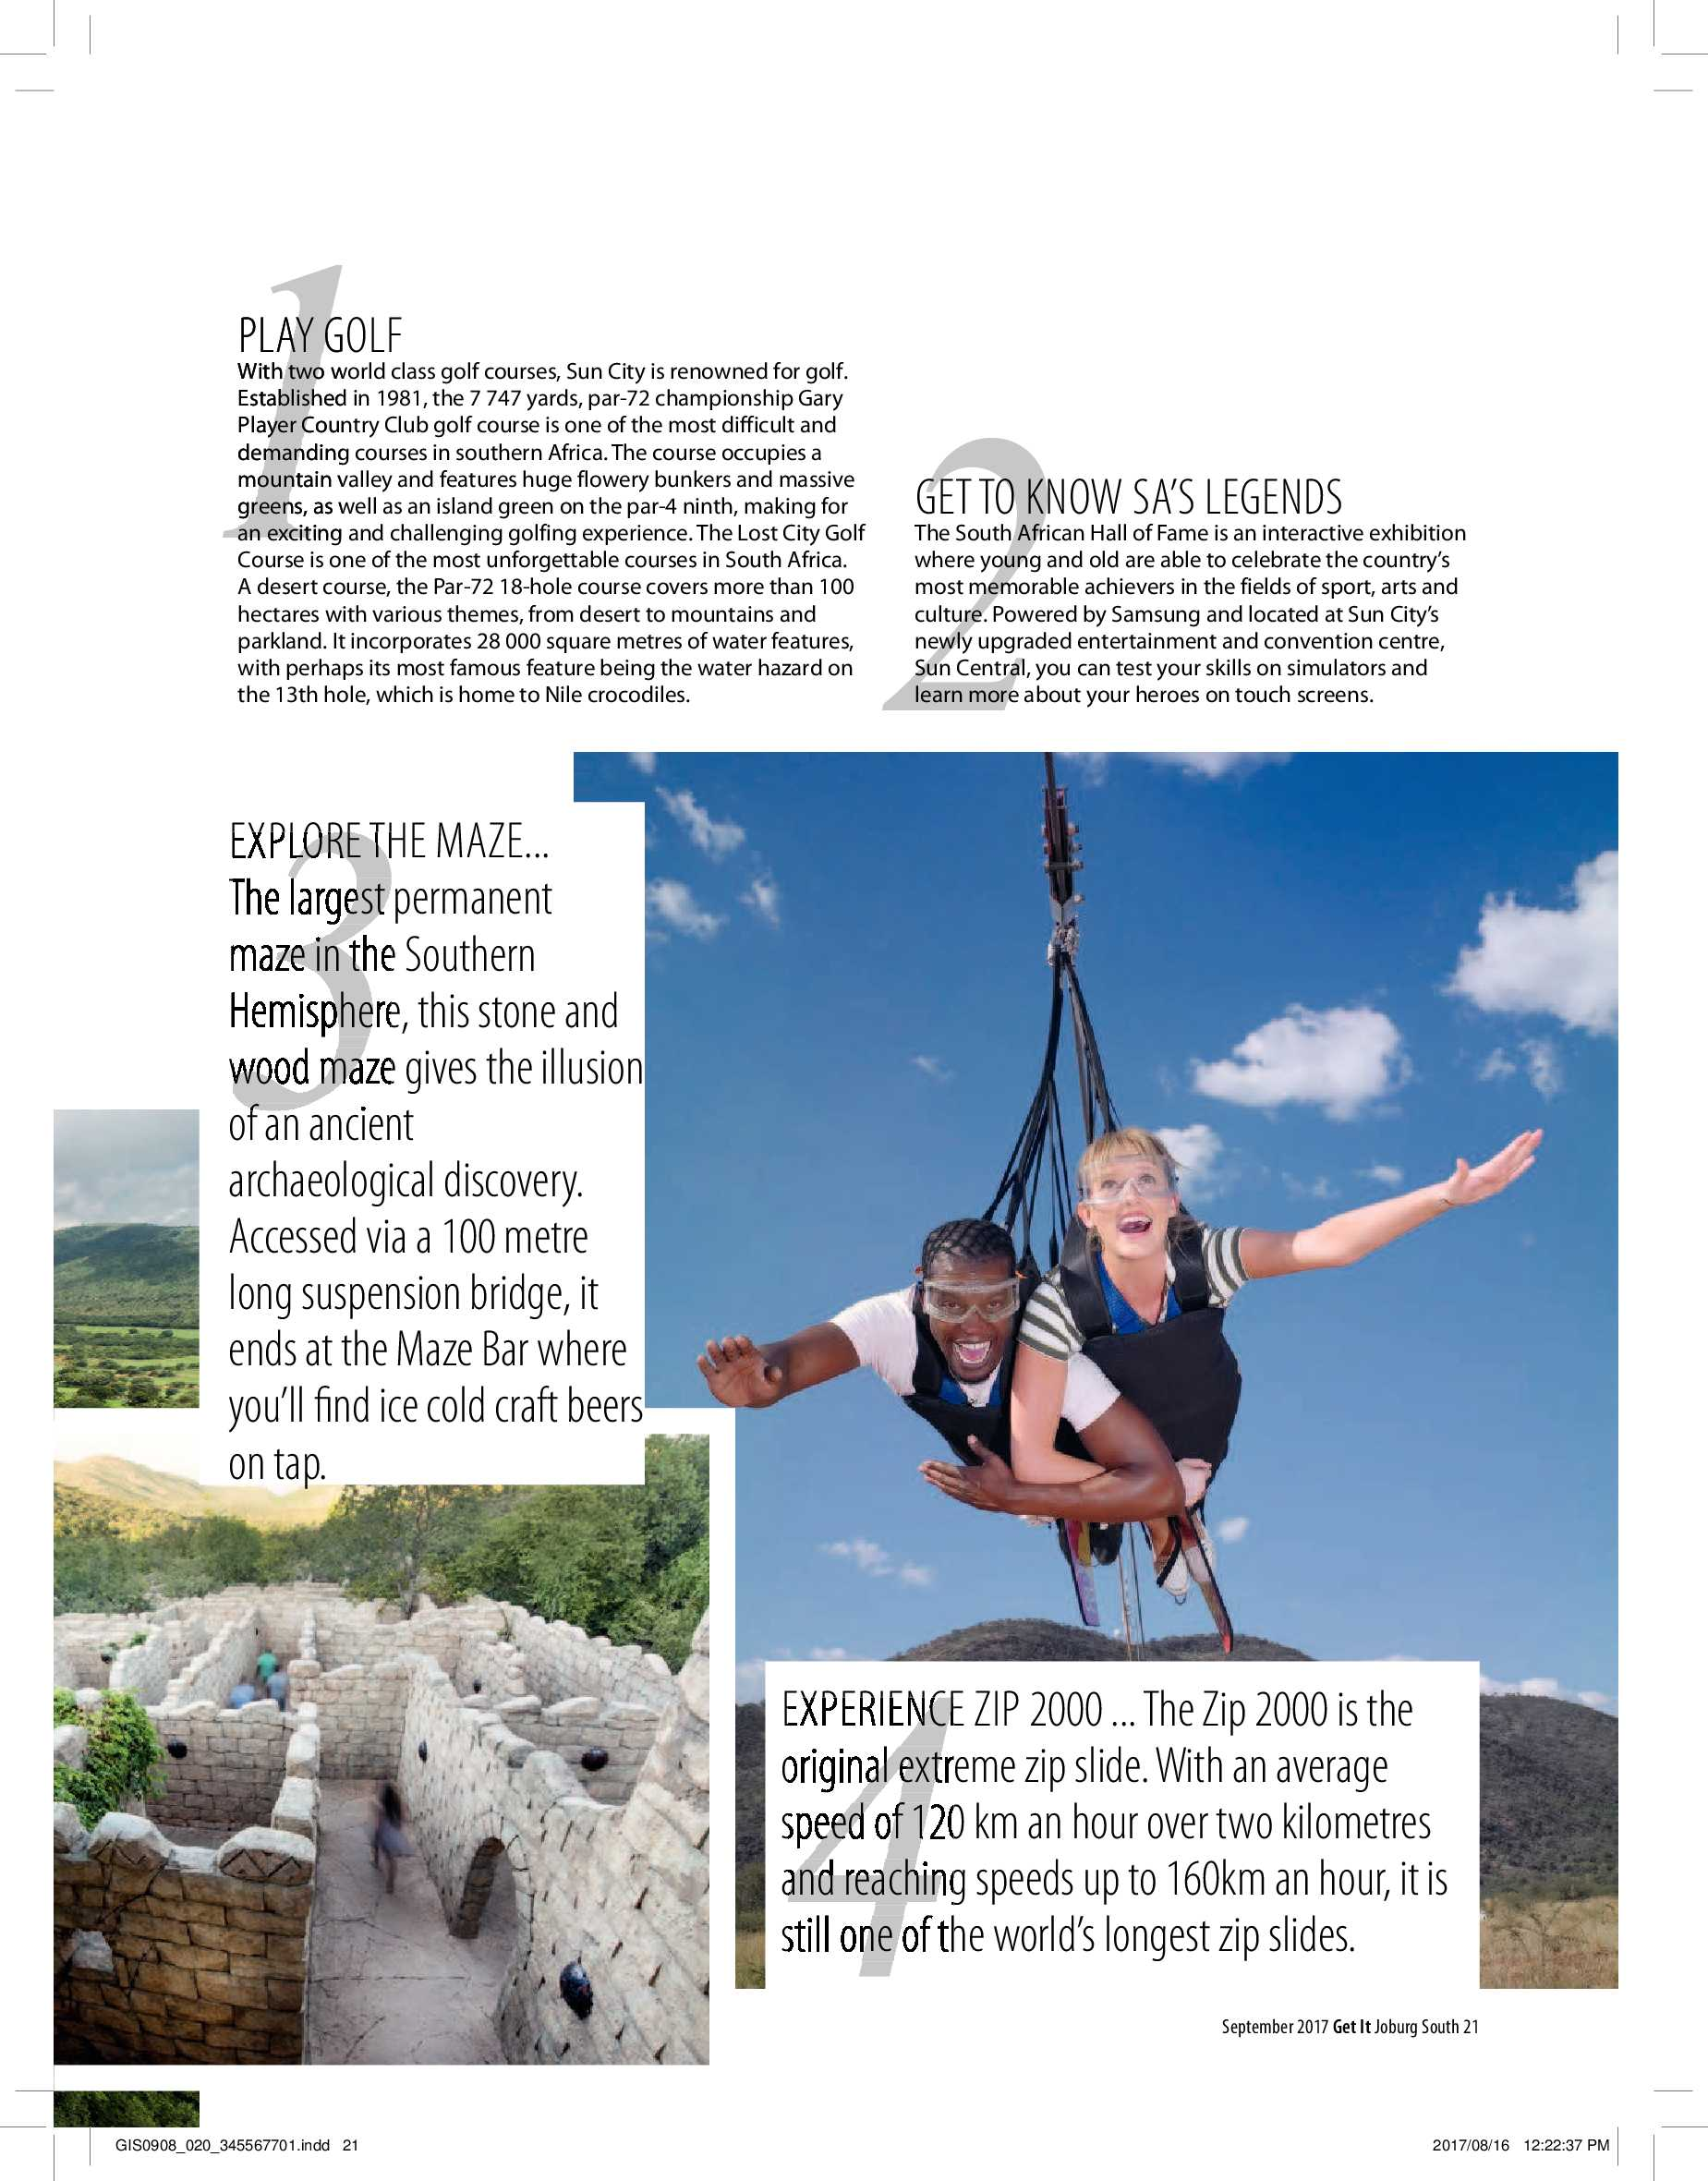 get-south-september-2017-epapers-page-21